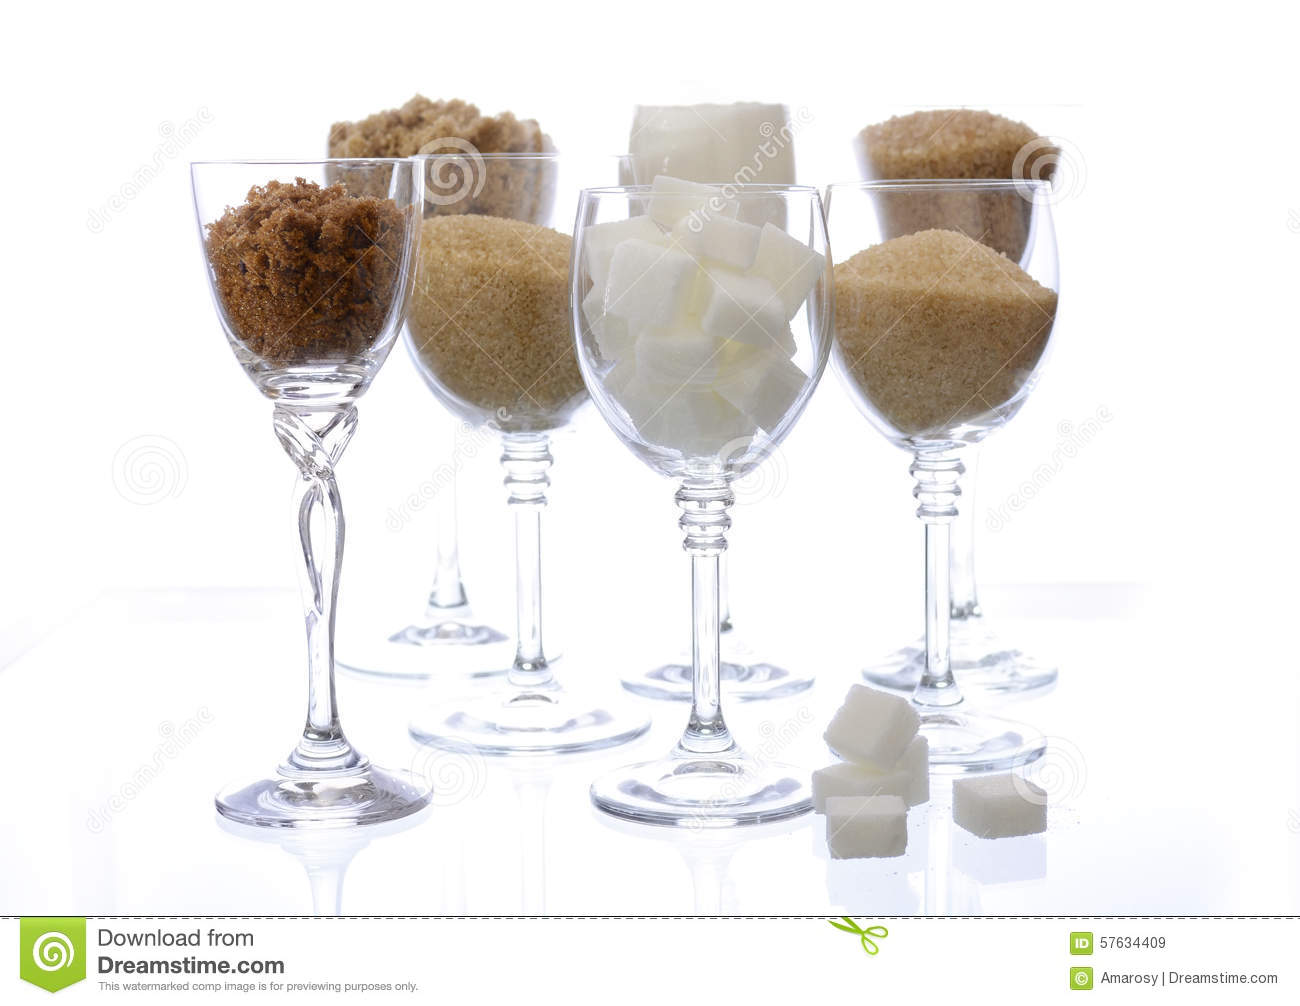 Different Types Of Sugar In Glasses On White Stock Photo